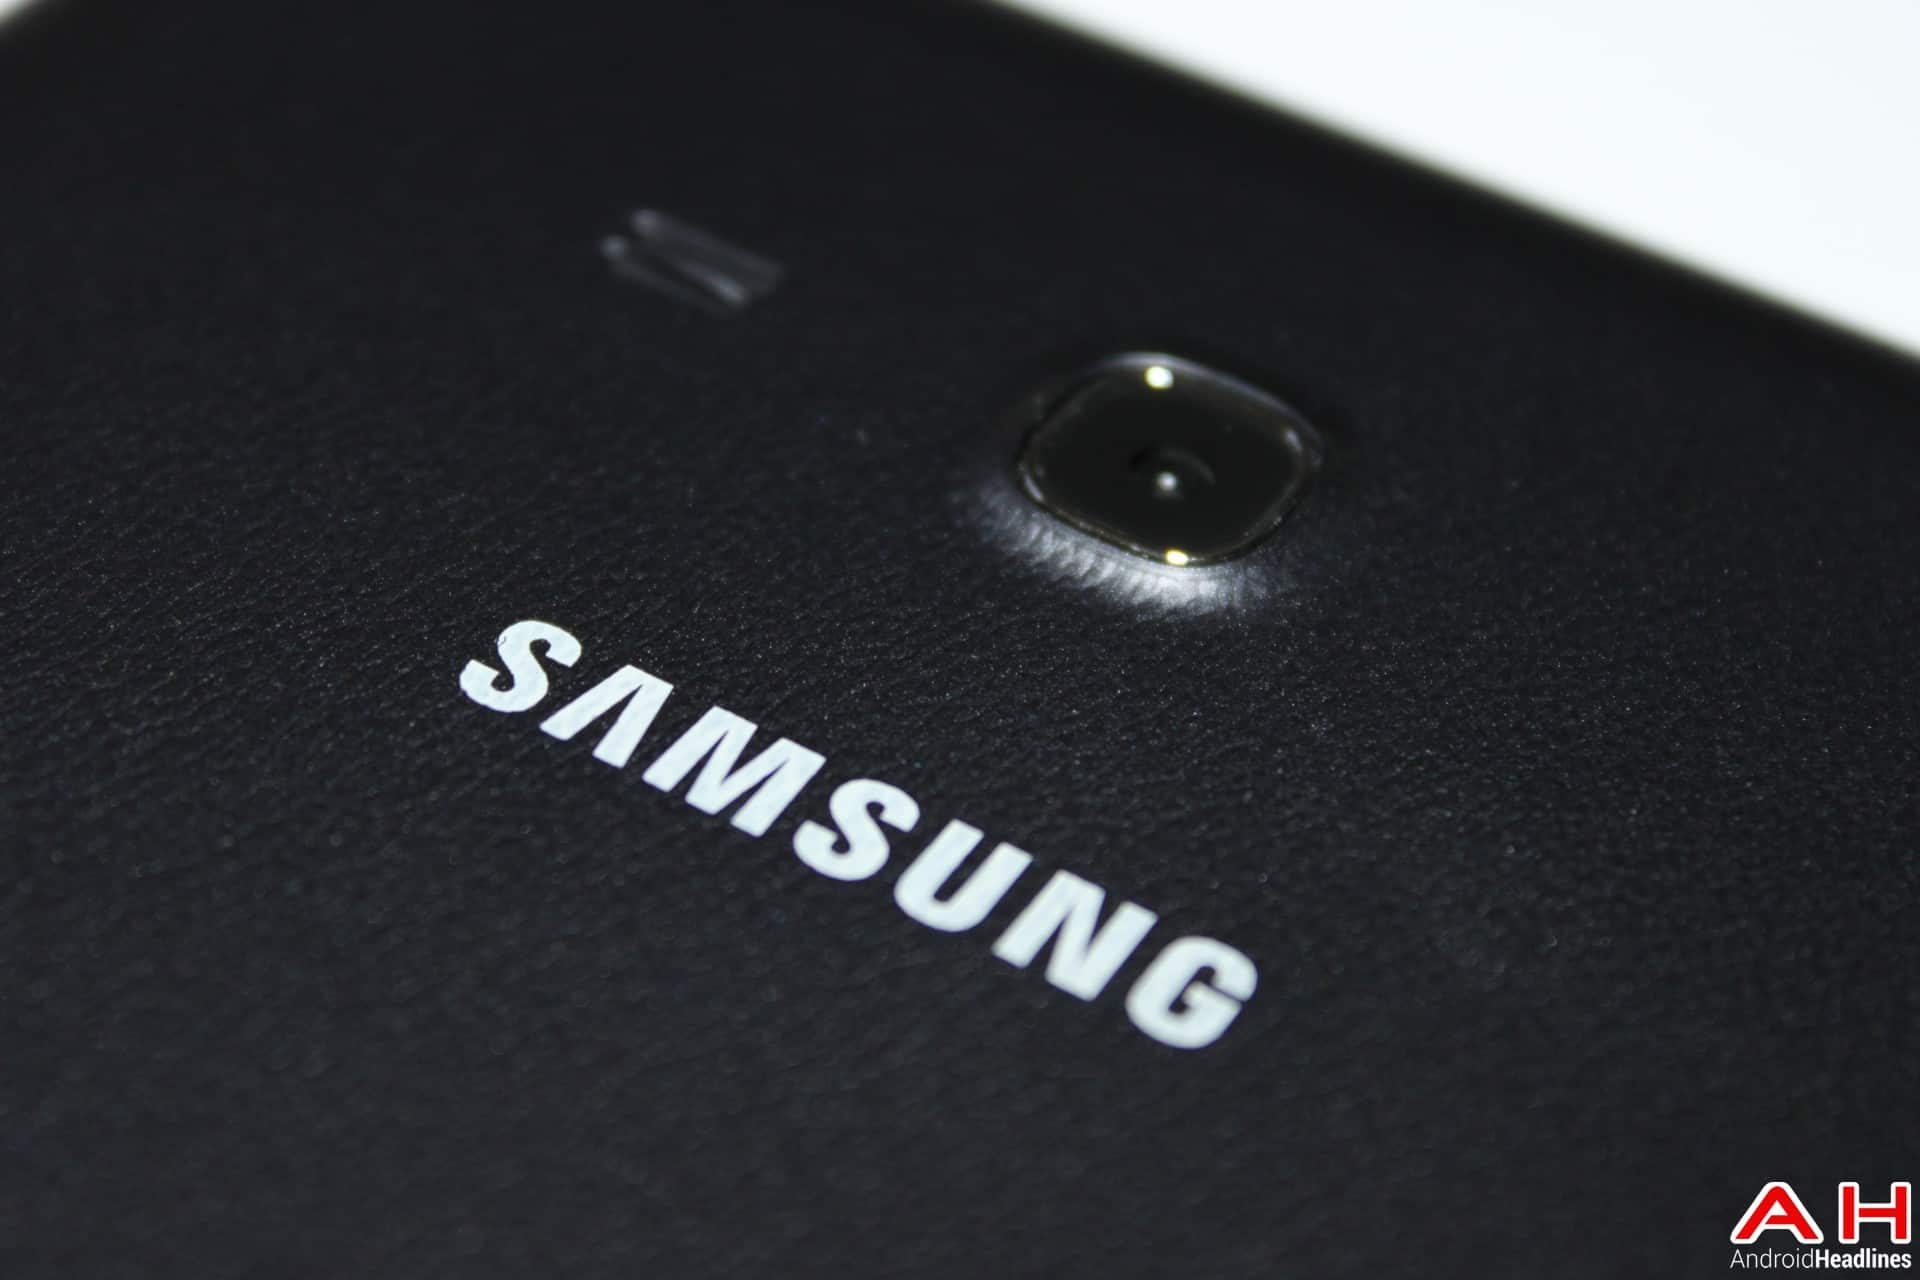 Samsungs Galaxy J1 Is To Be First In New Line Of Budget Android Samsung J100 4 Gb Smartphones